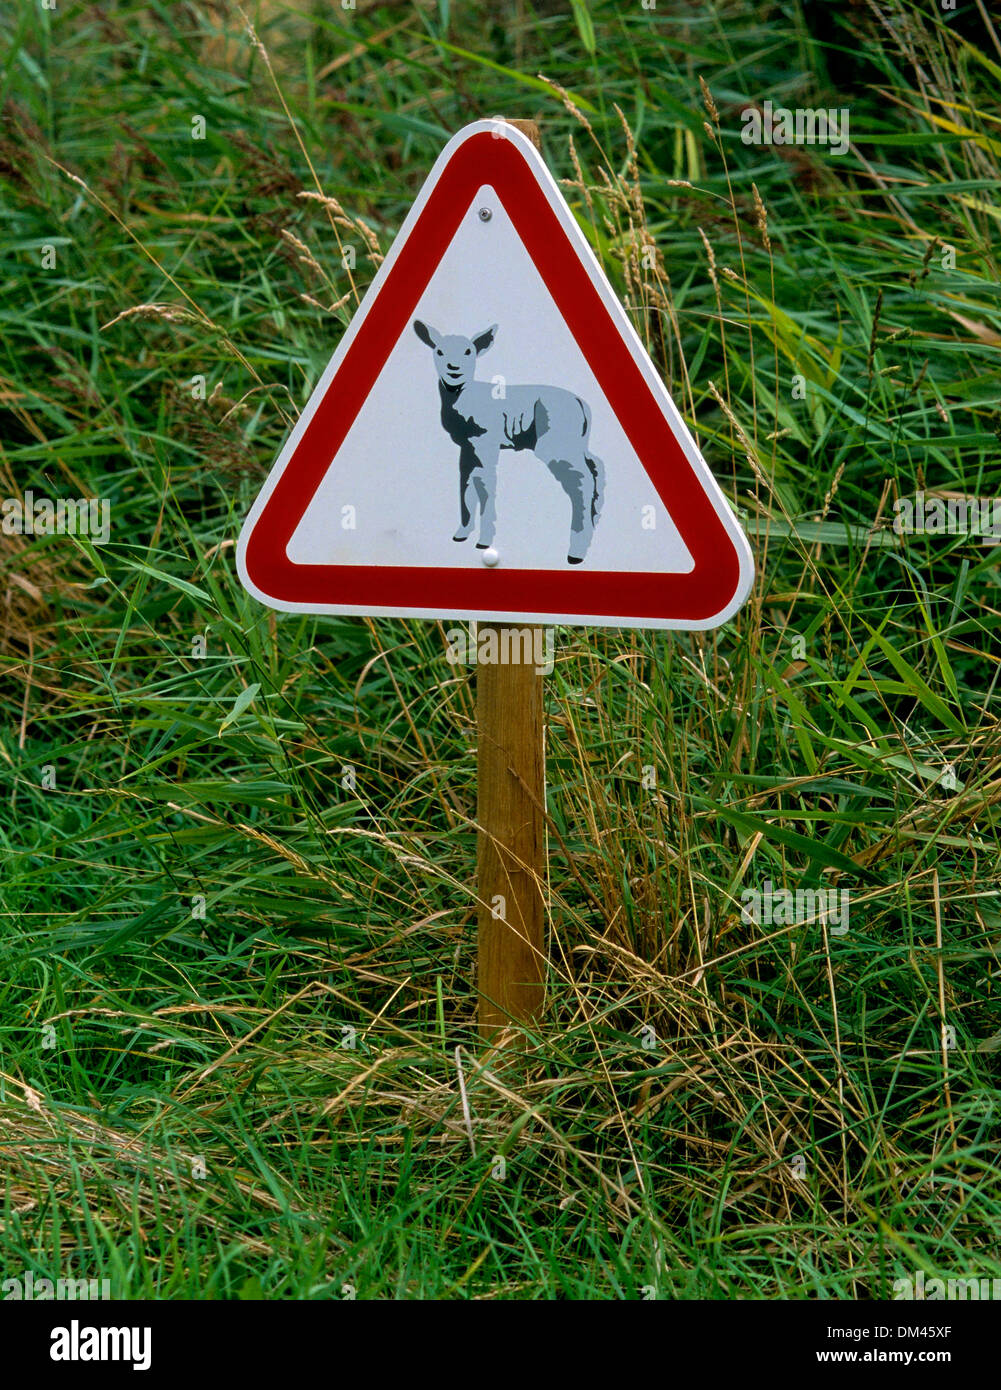 Sign: Caution sheep!, Schild: Achtung Schafe! - Stock Image